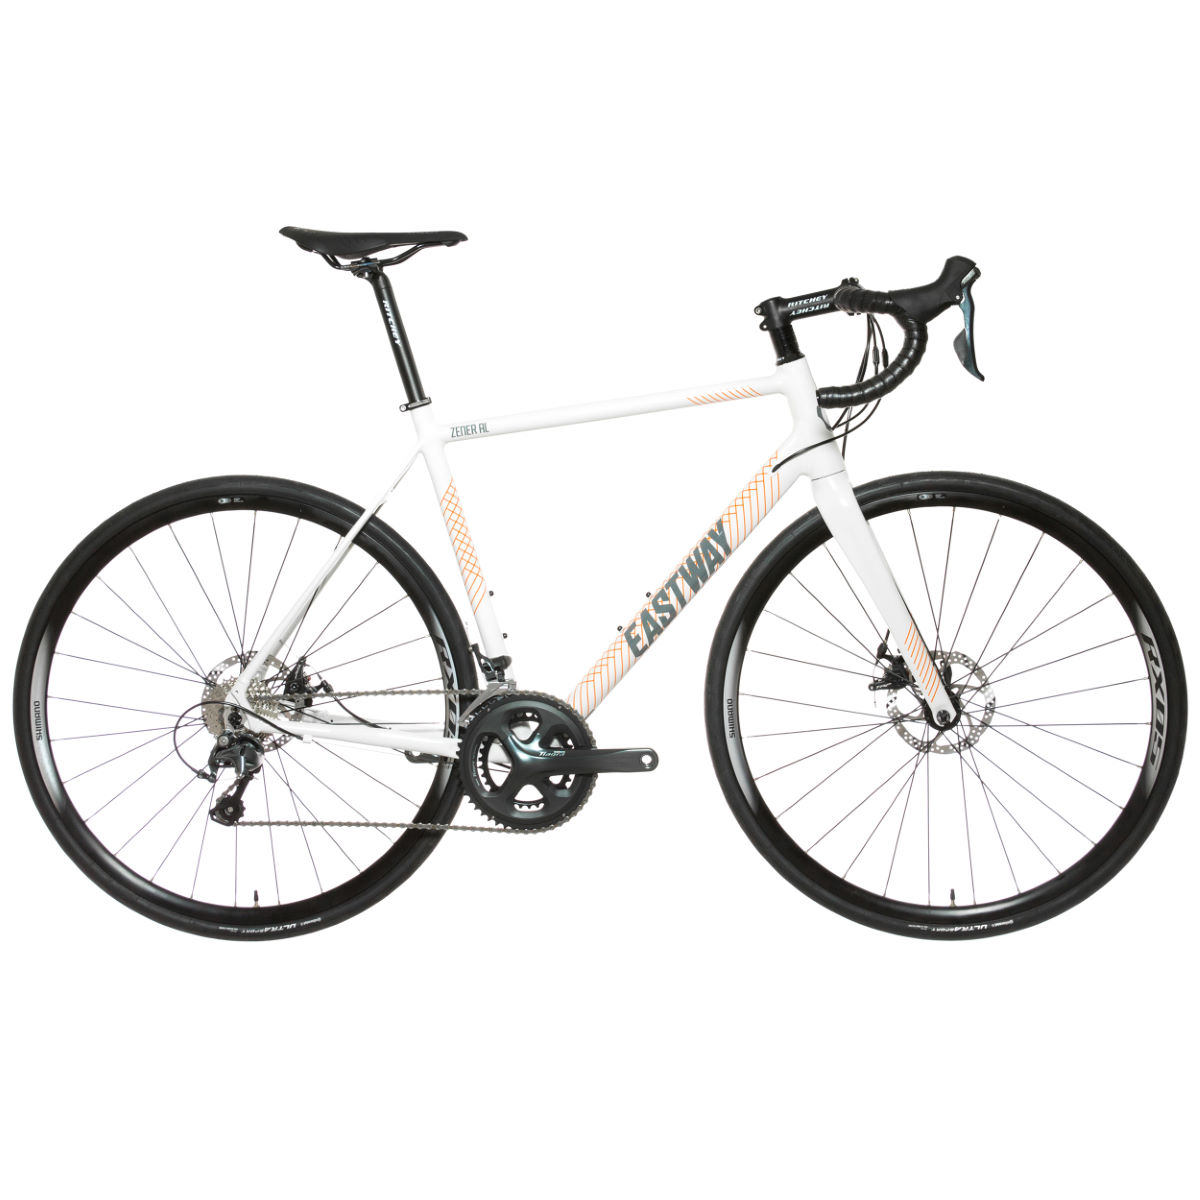 Vélo de route Eastway Zener AL D2 (Tiagra, 2017) - 52cm Stock Bike Gris/Orange Vélos de route